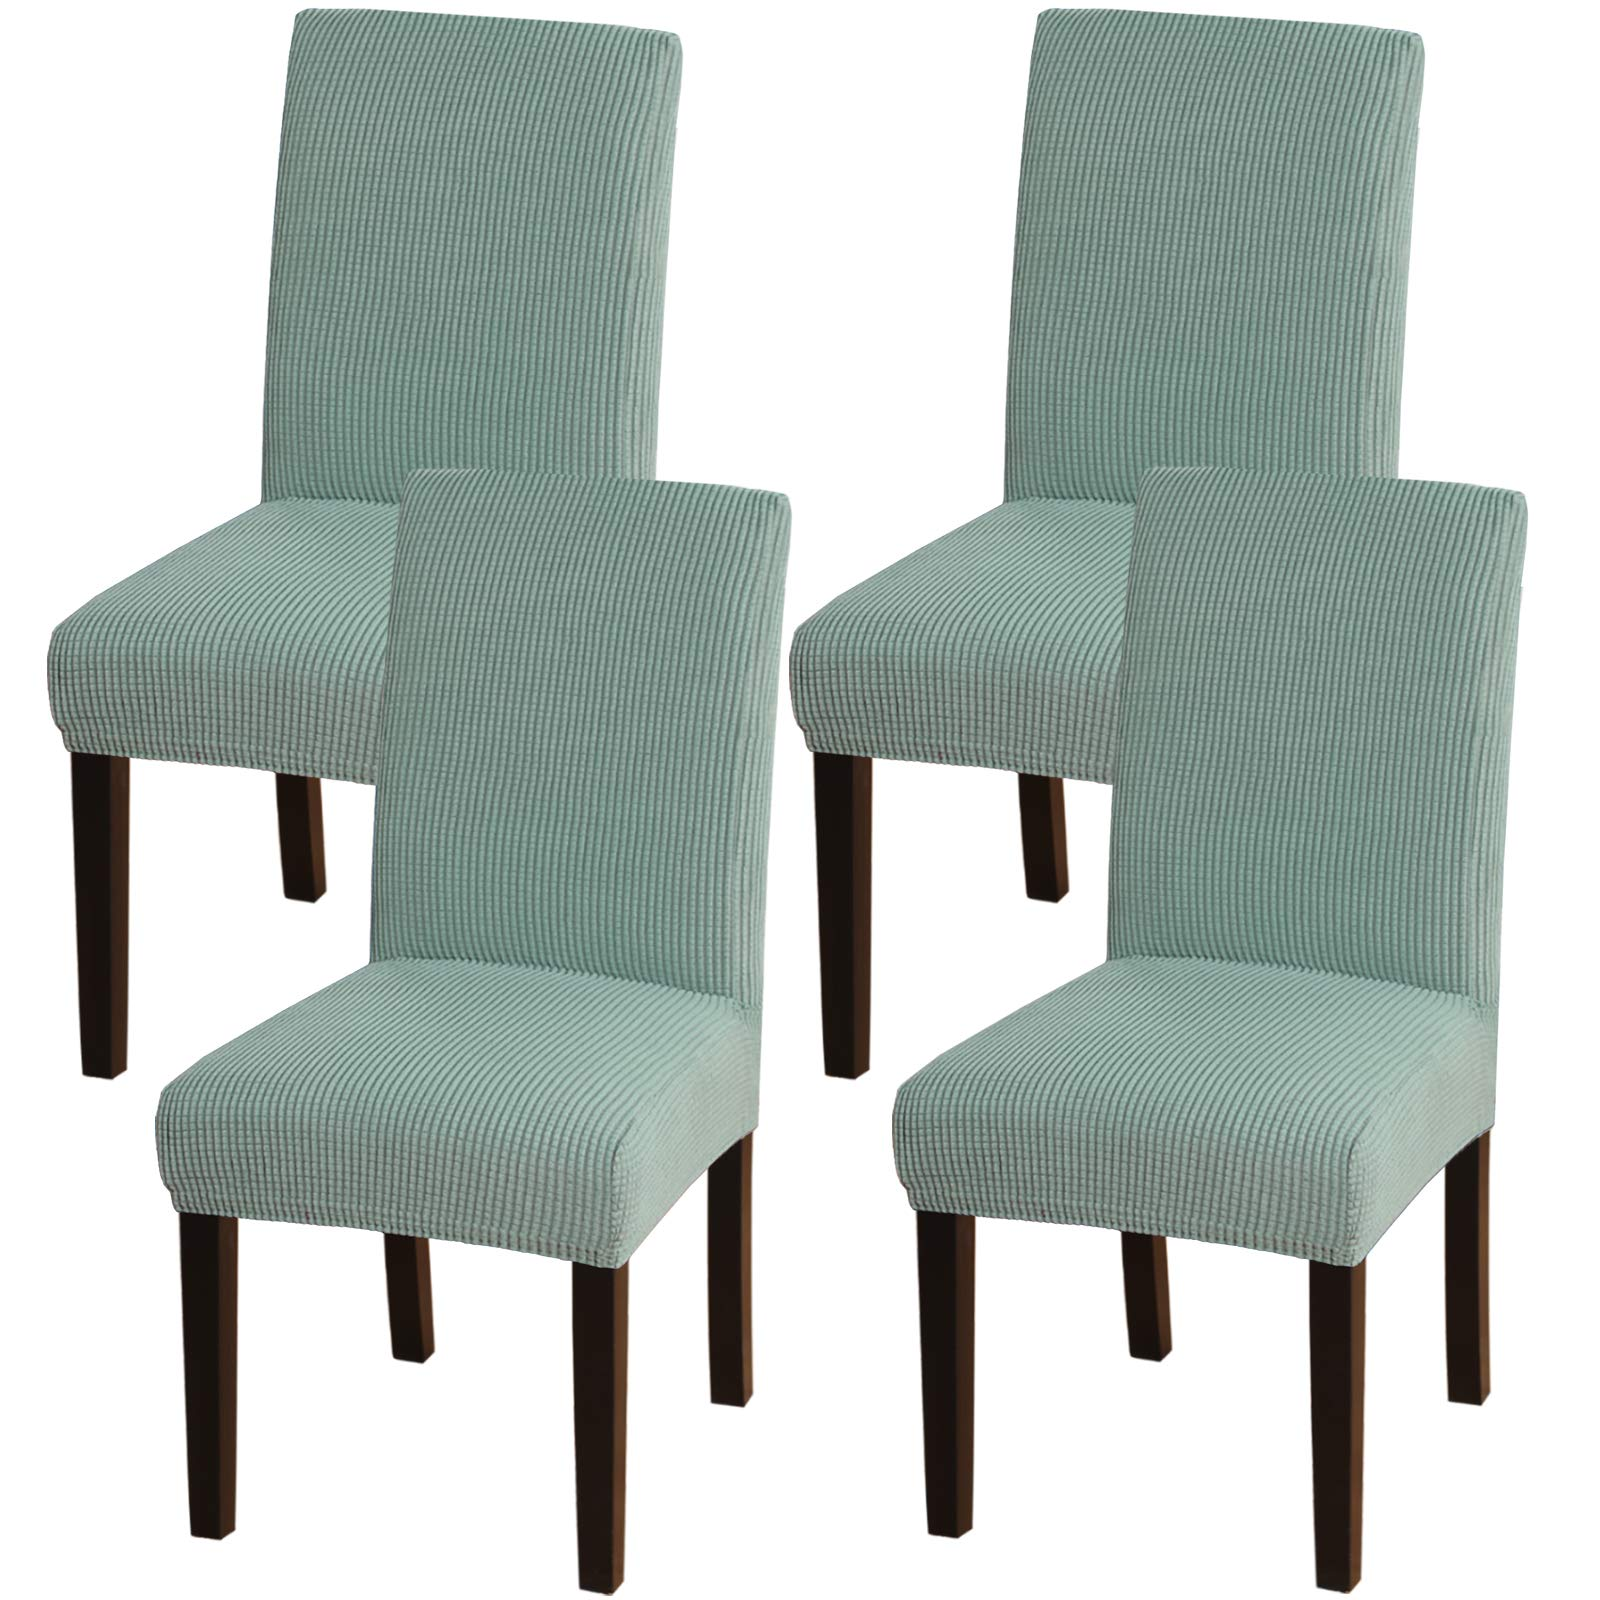 Washable Removable Parsons Chair Protector Soft Stretch Seat Slipcover Dark Gray MILARAN Velvet Chair Covers for Dining Room Set of 4